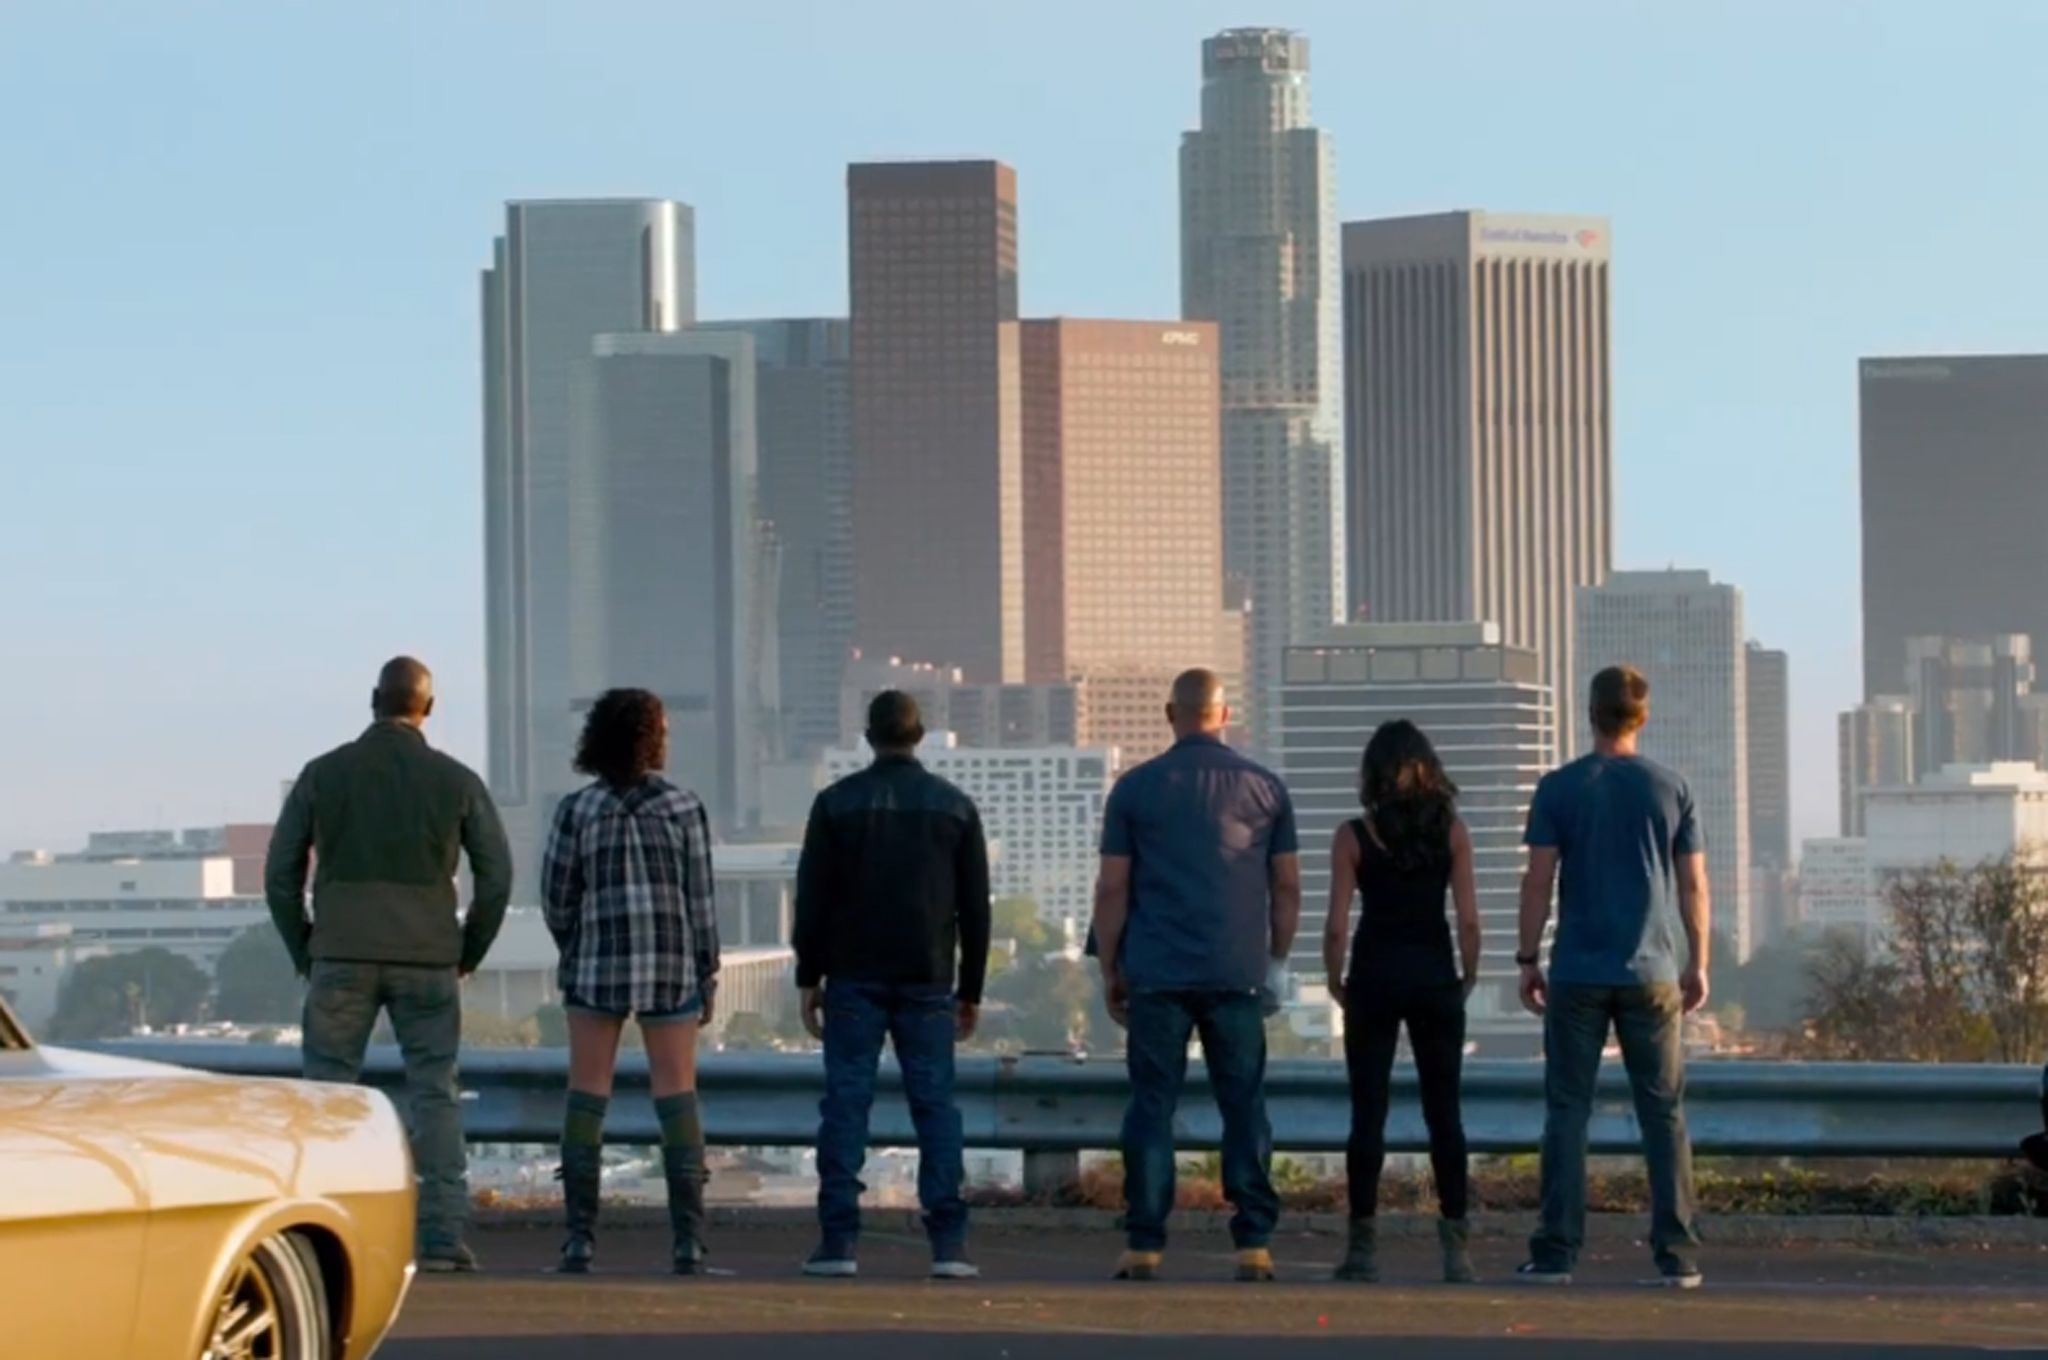 fast furious 7 download free full movie